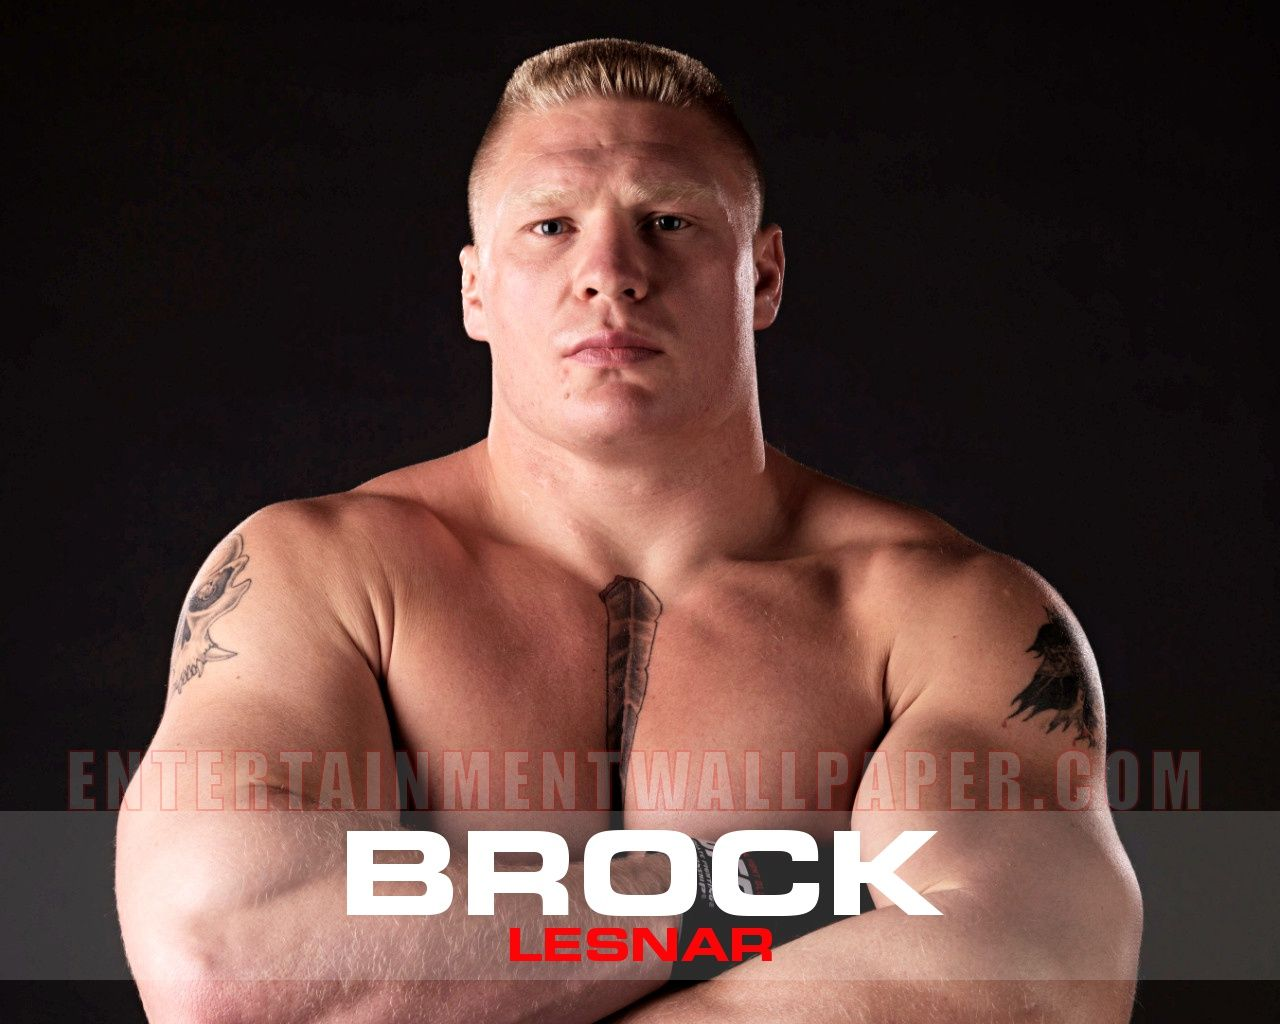 Brock Lesnar Logo Wallpapers - WallpaperSafari